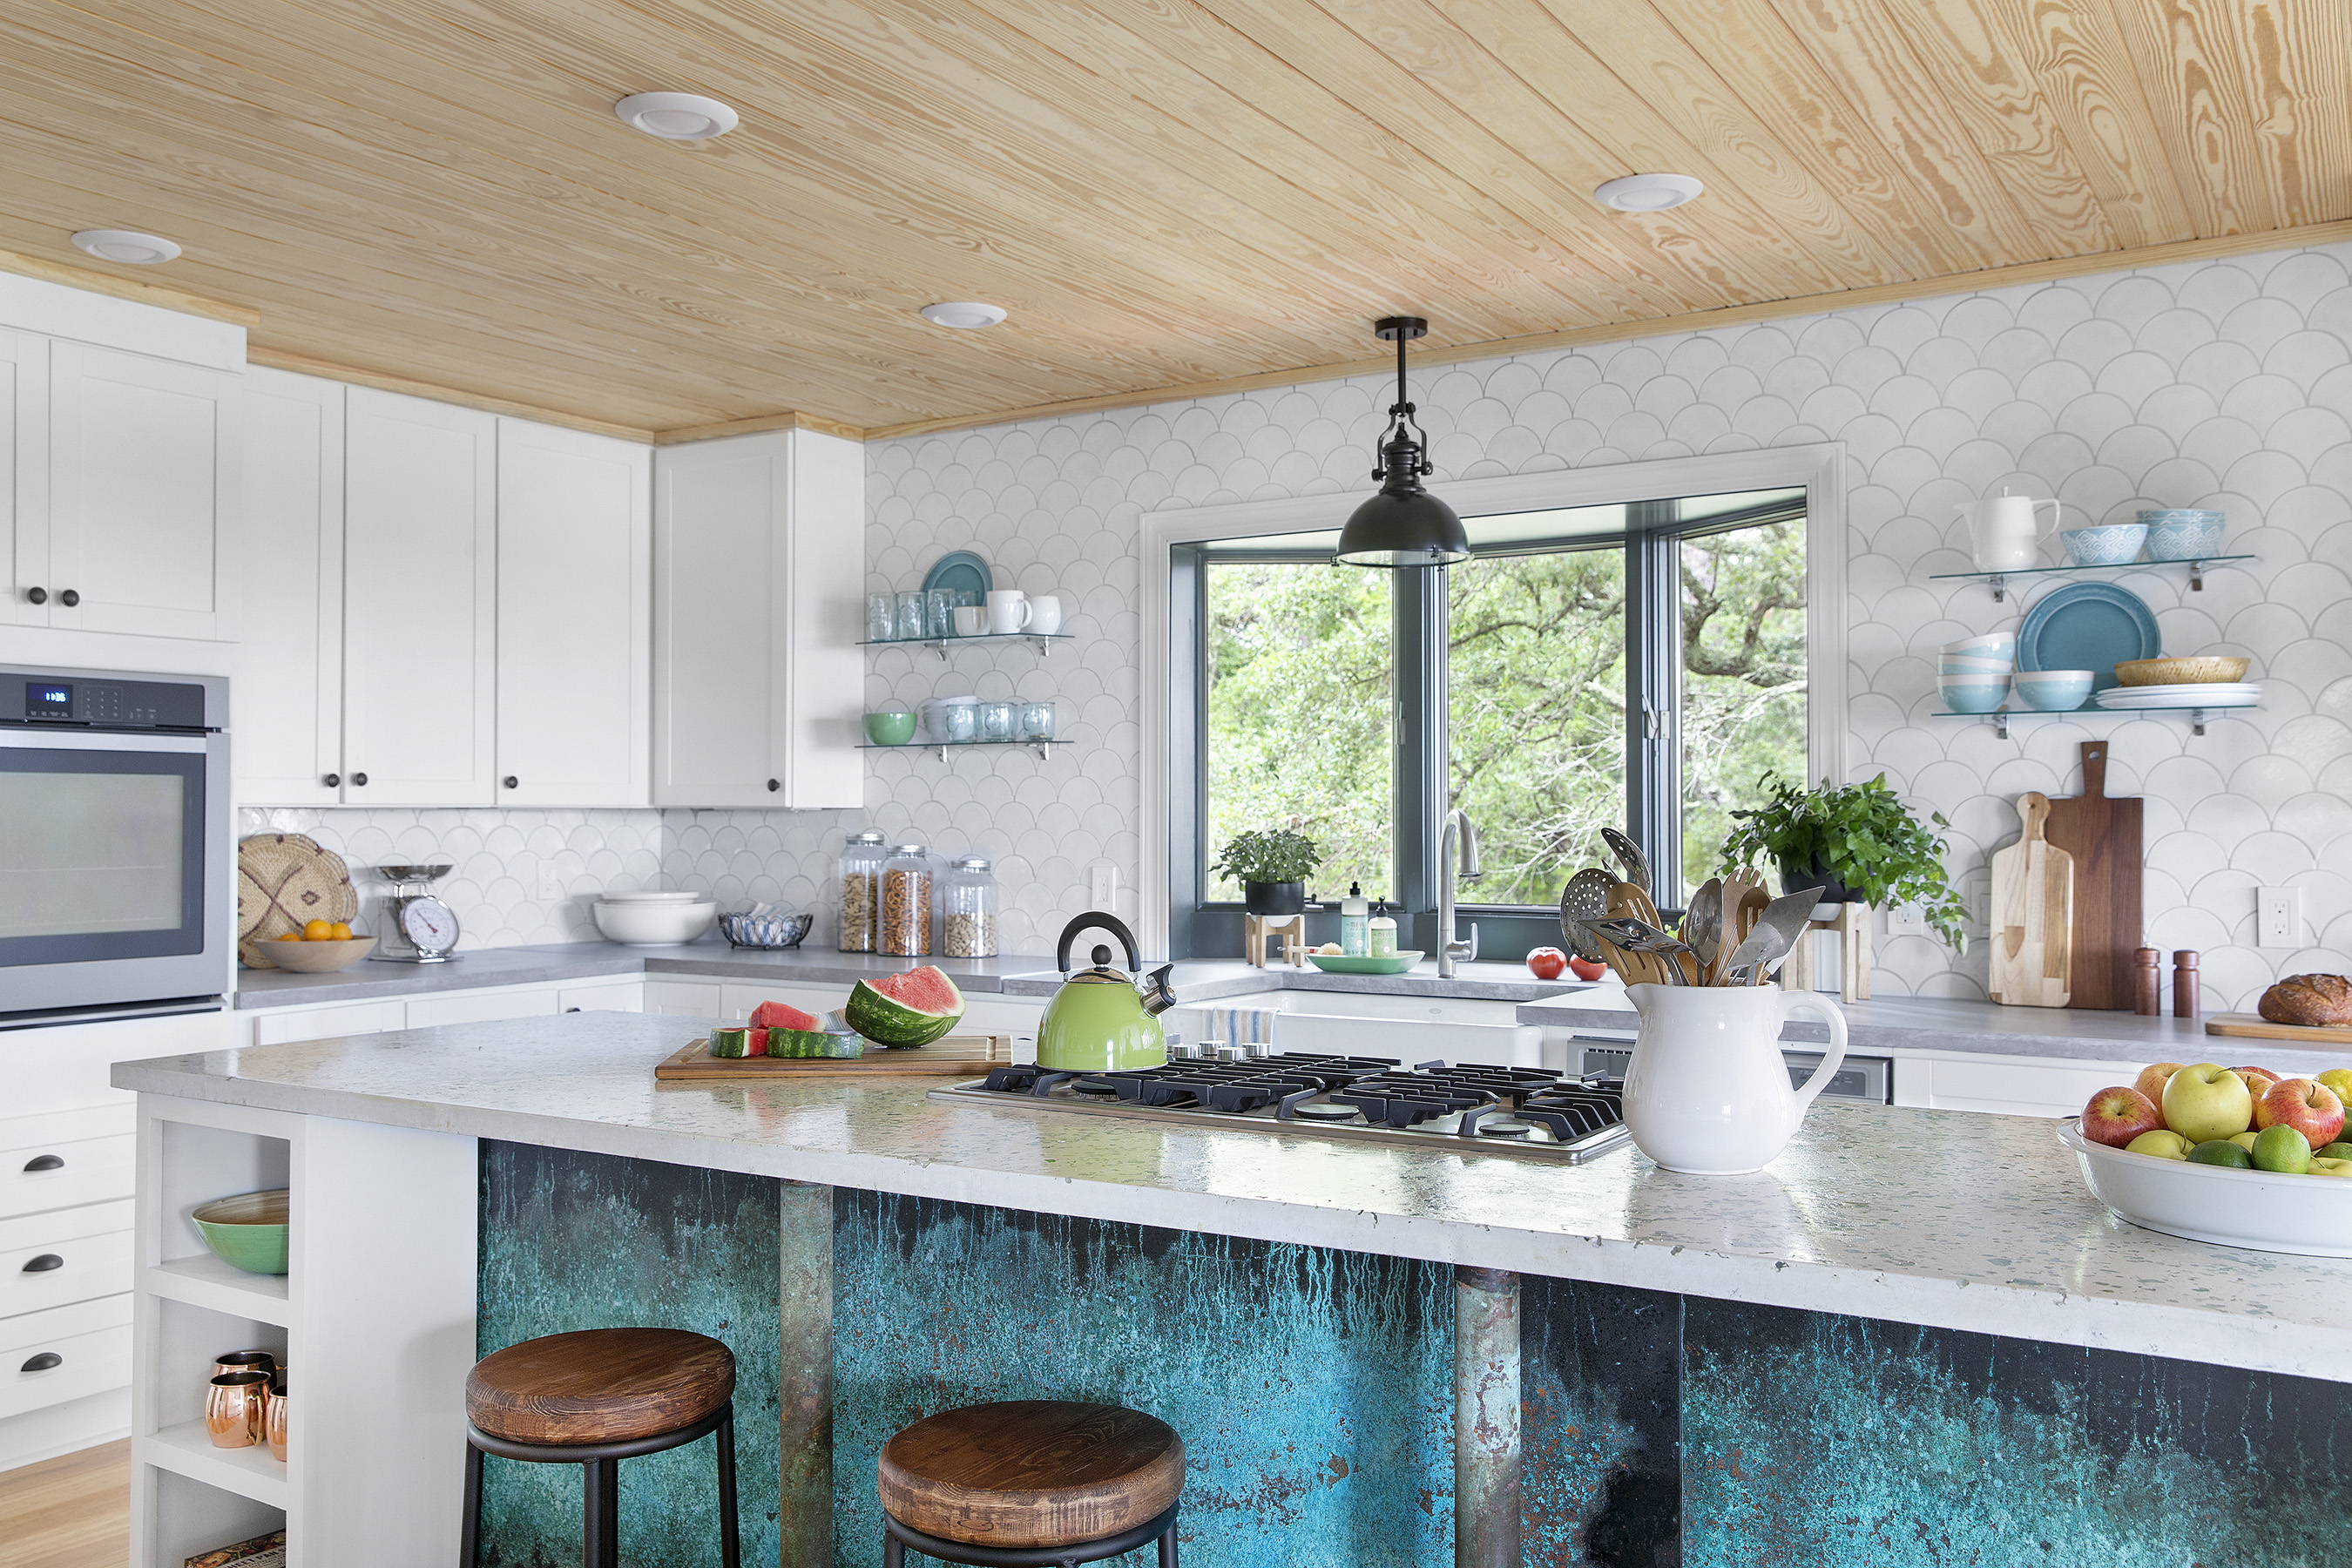 The kitchen in the DIY Network Blog Cabin 2016 boasts two islands and tons of prep and storage space. On one side, a breakfast nook features a table upcycled from a vintage boat hull, while the other side hosts a coffee bar and walk-in pantry.